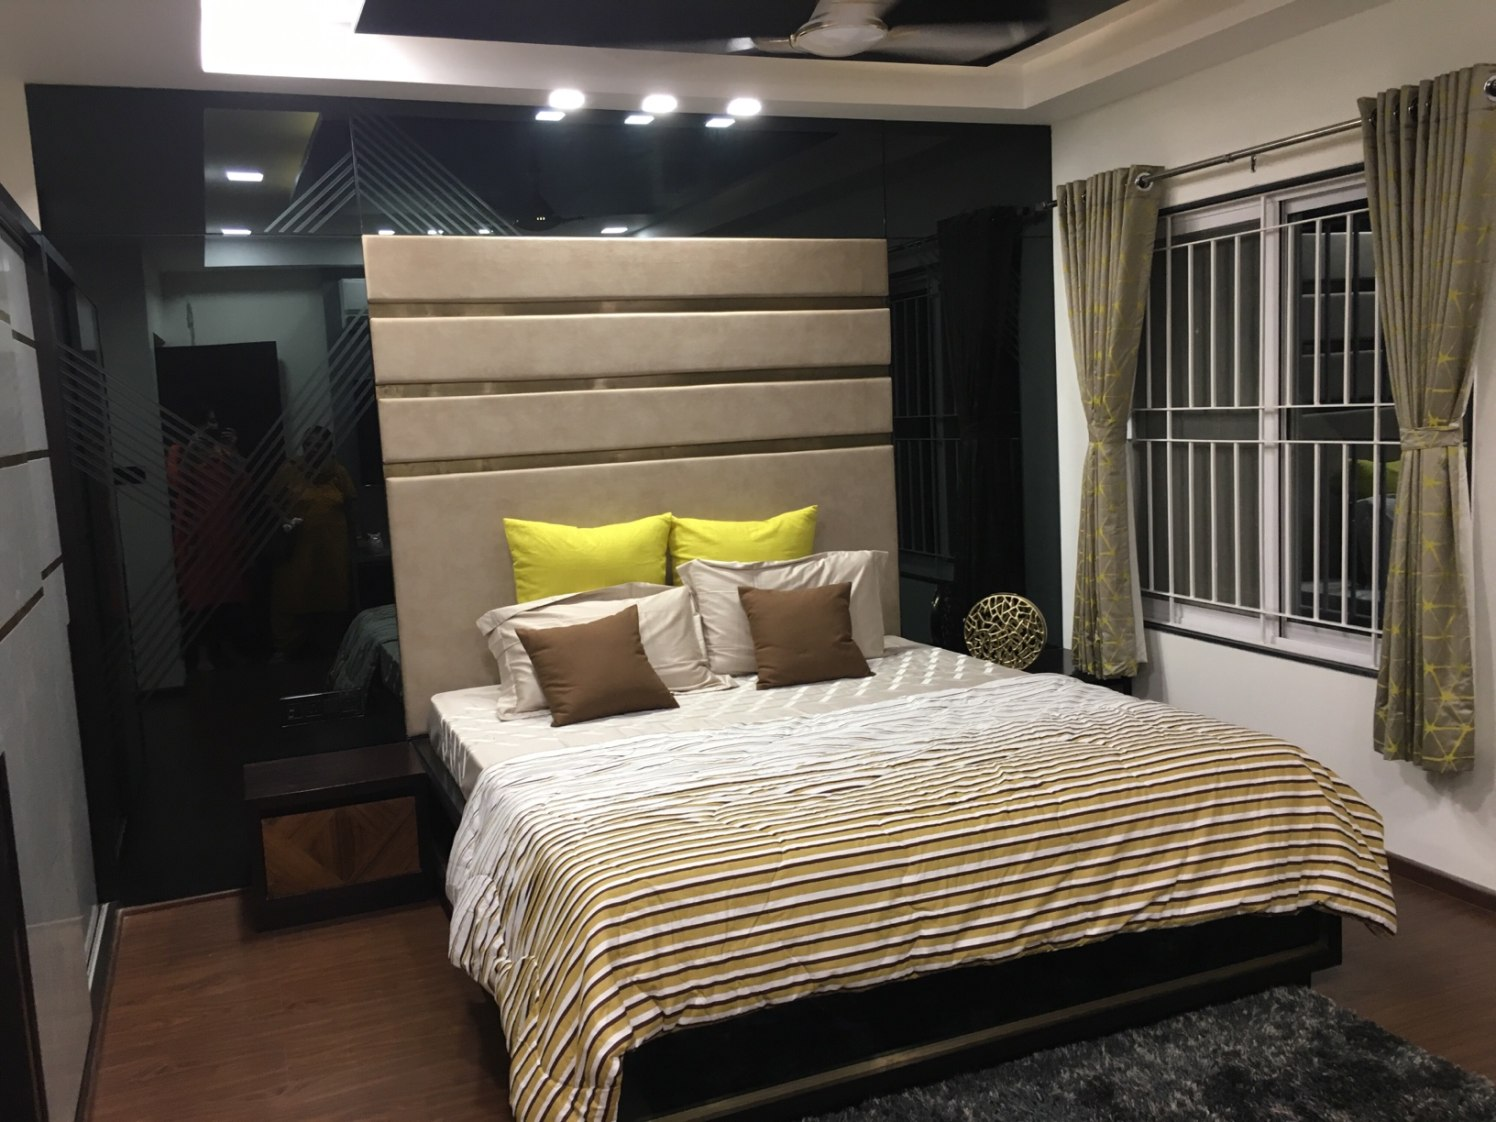 Low Rise Wooden Bed And Beige Cushioned Head Cover by Dhwani Patel Bedroom Contemporary | Interior Design Photos & Ideas